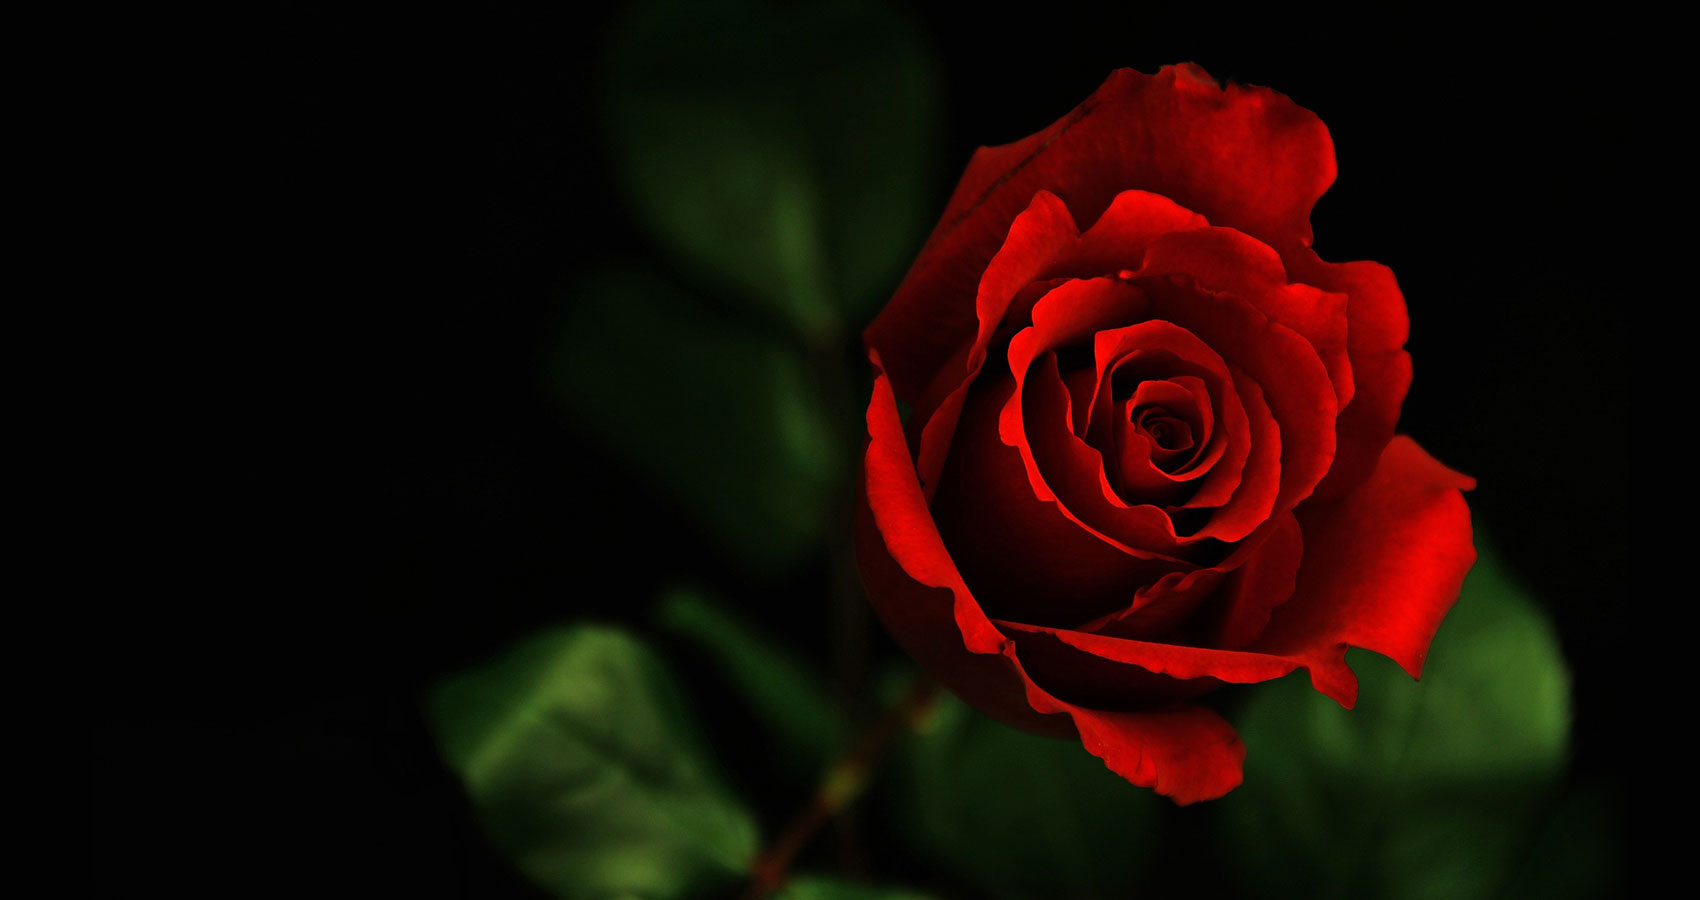 Red, Red Rose a sonnet written by Robert Burns at Spillwords.com